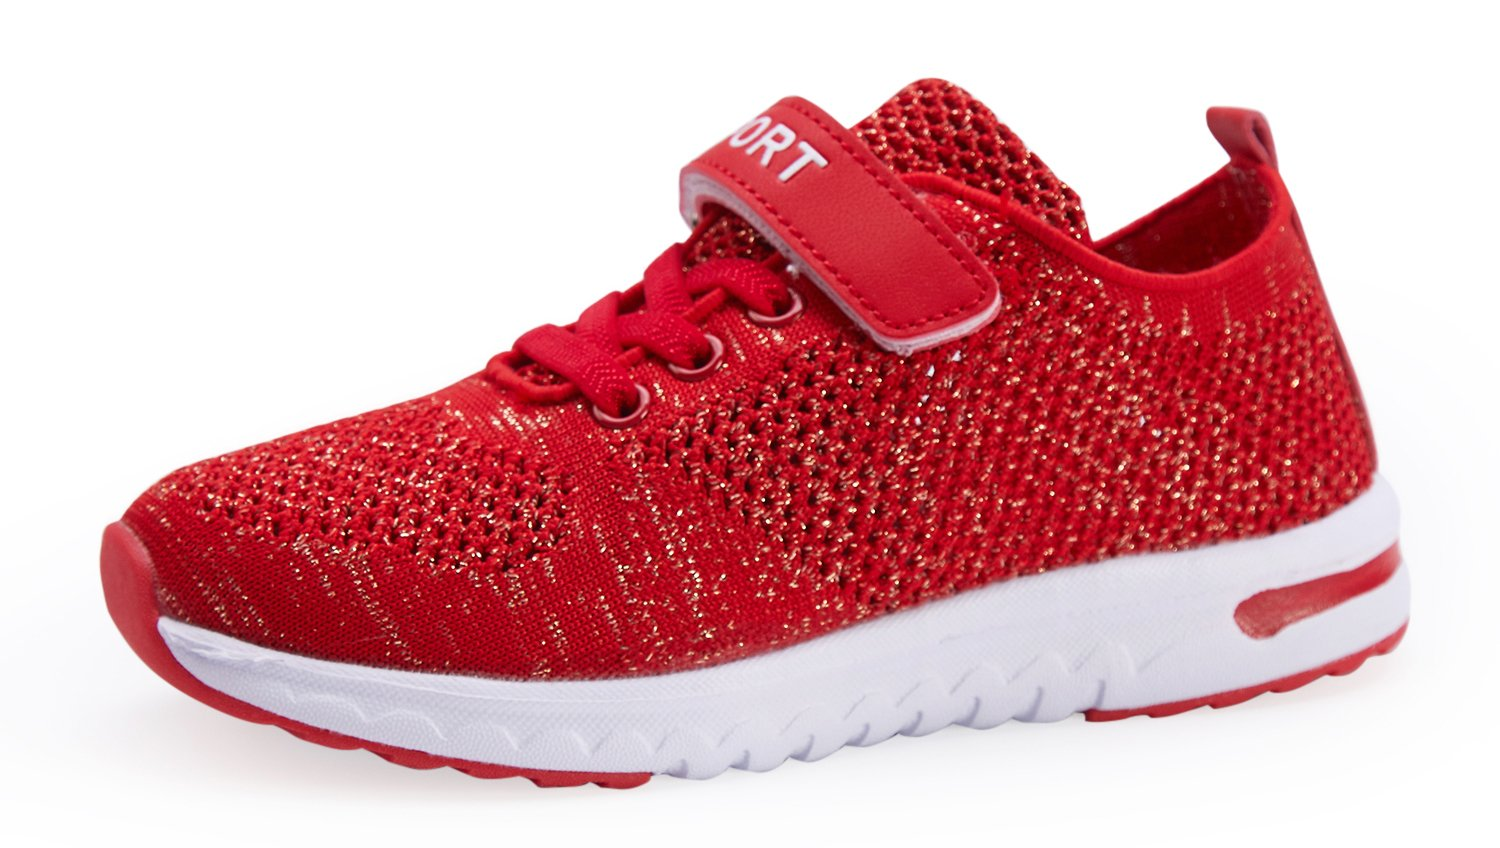 Casbeam Breathable Ventilation Girls Sneakers with Flyknit Upper Vamp Lightweight Shoes Red 36